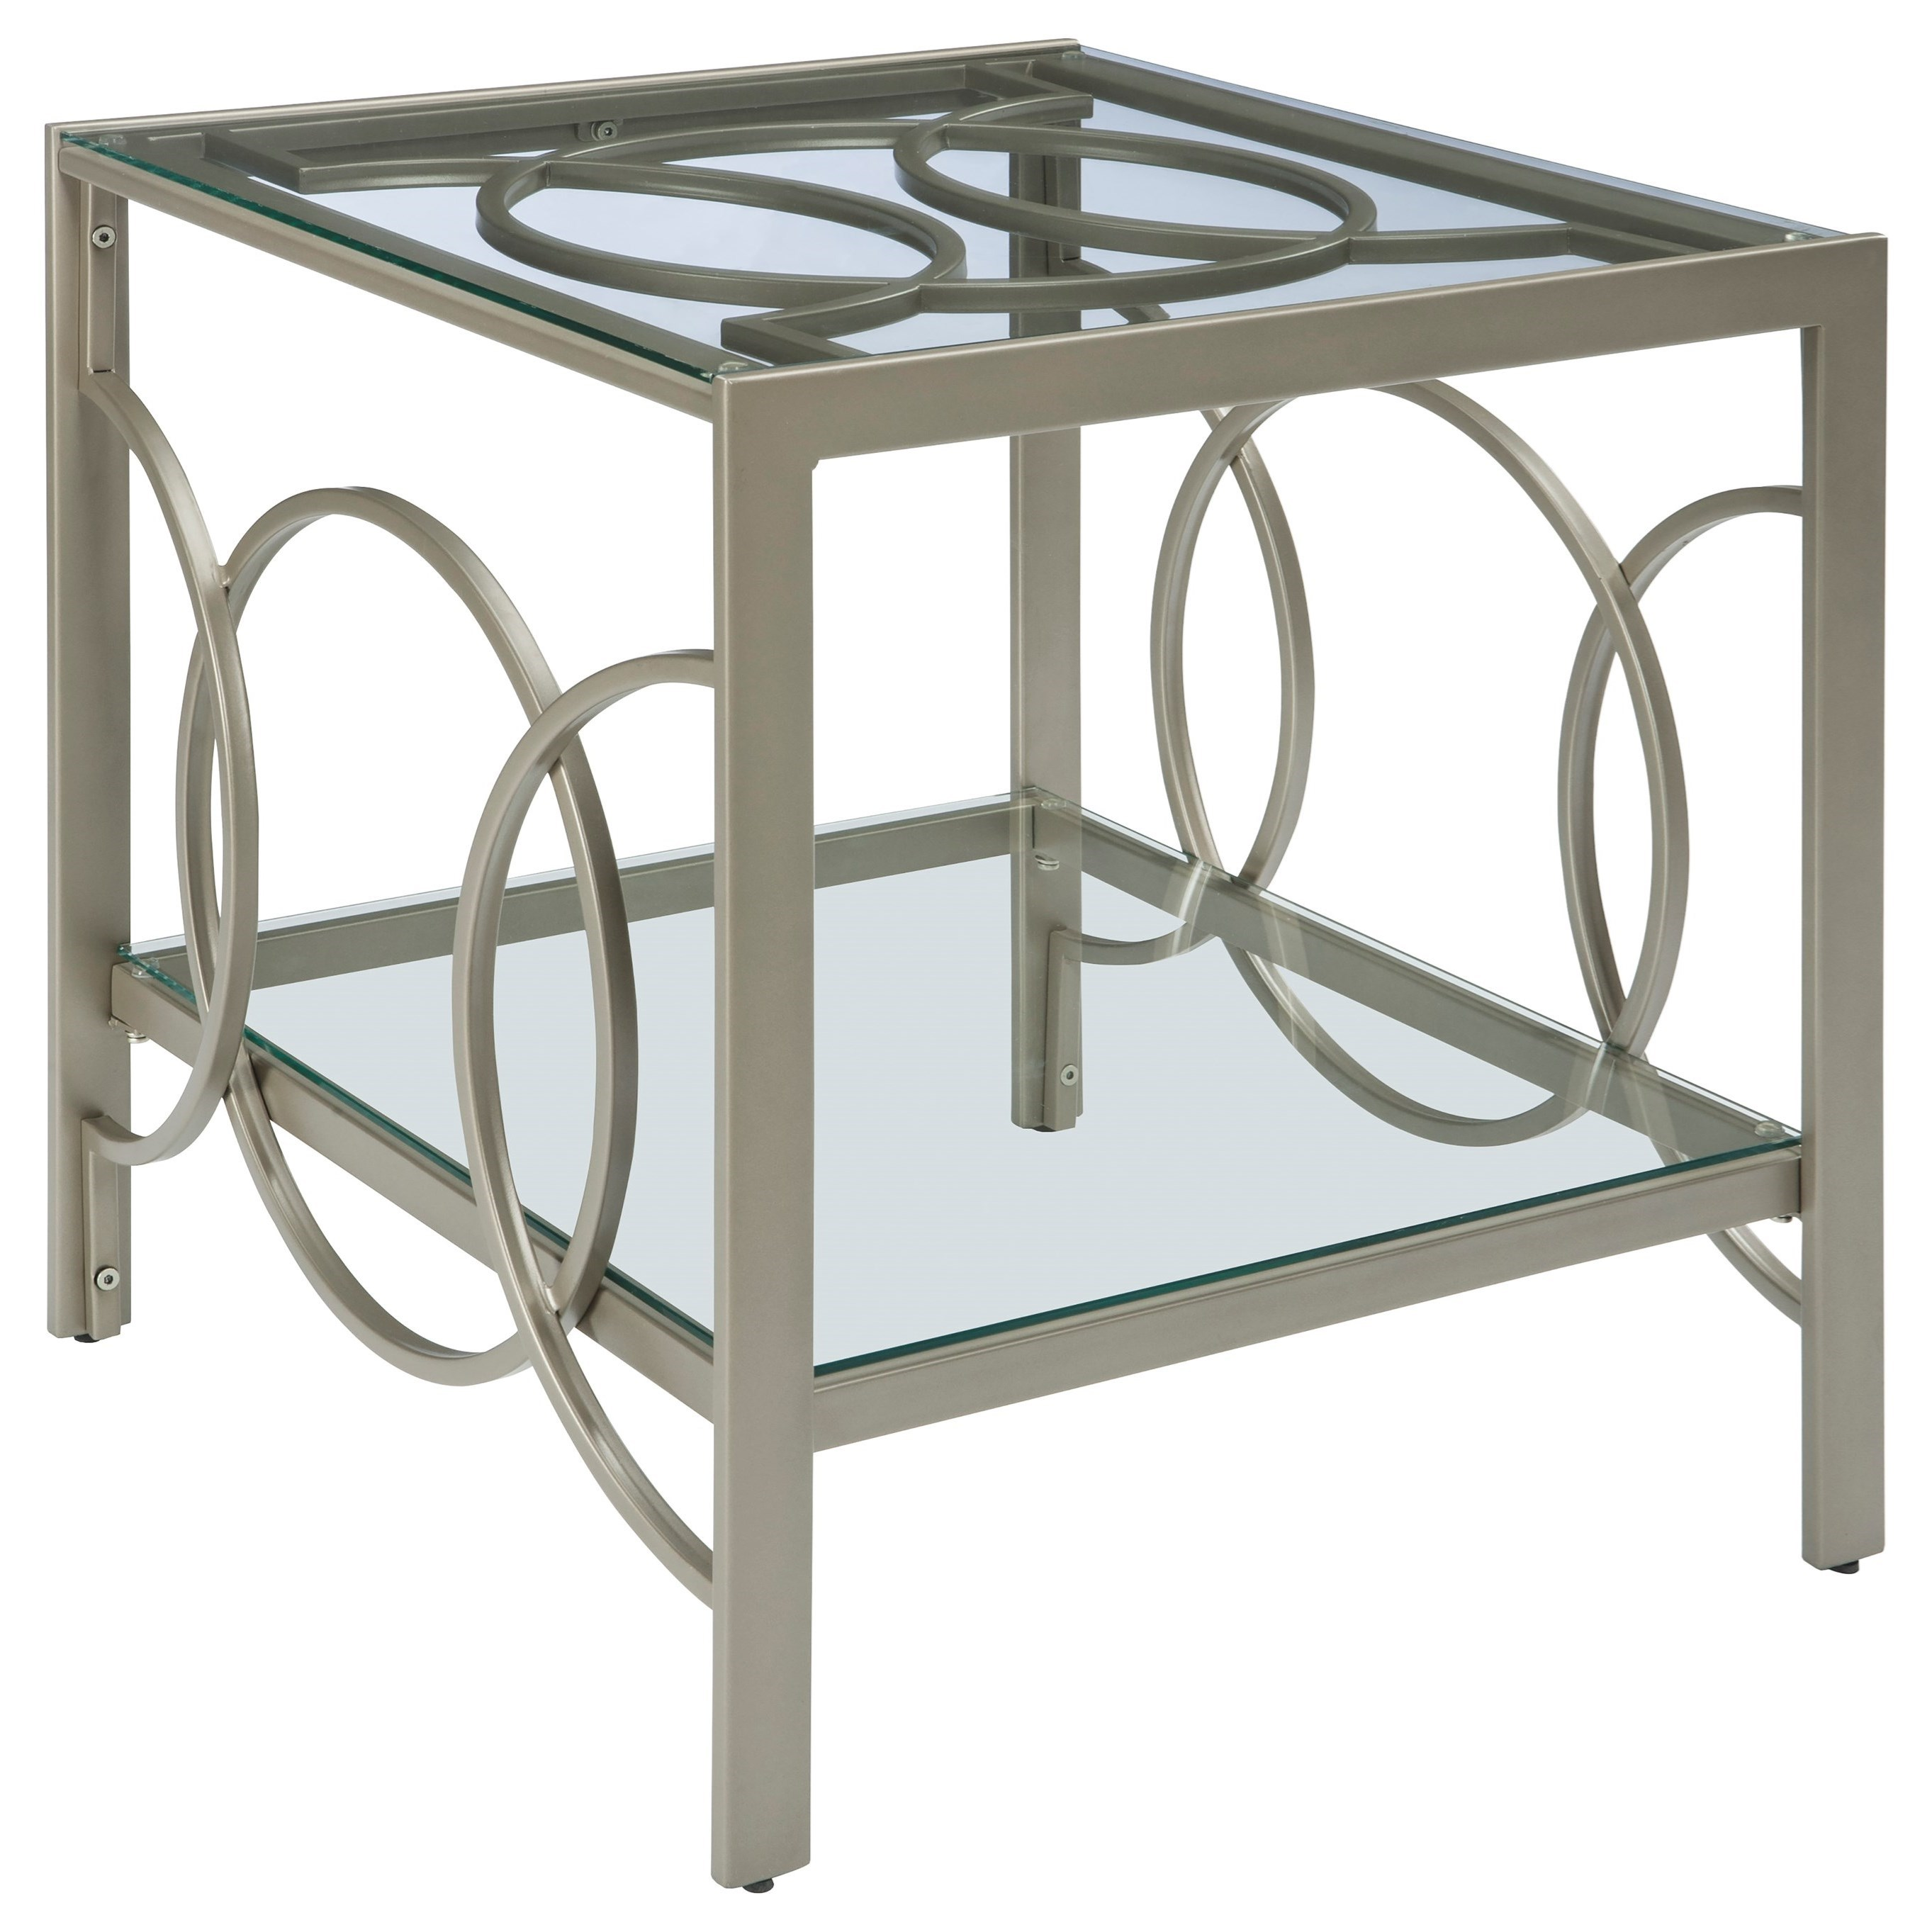 Signature Design by Ashley Charmoni Rectangular End Table - Item Number: T080-3